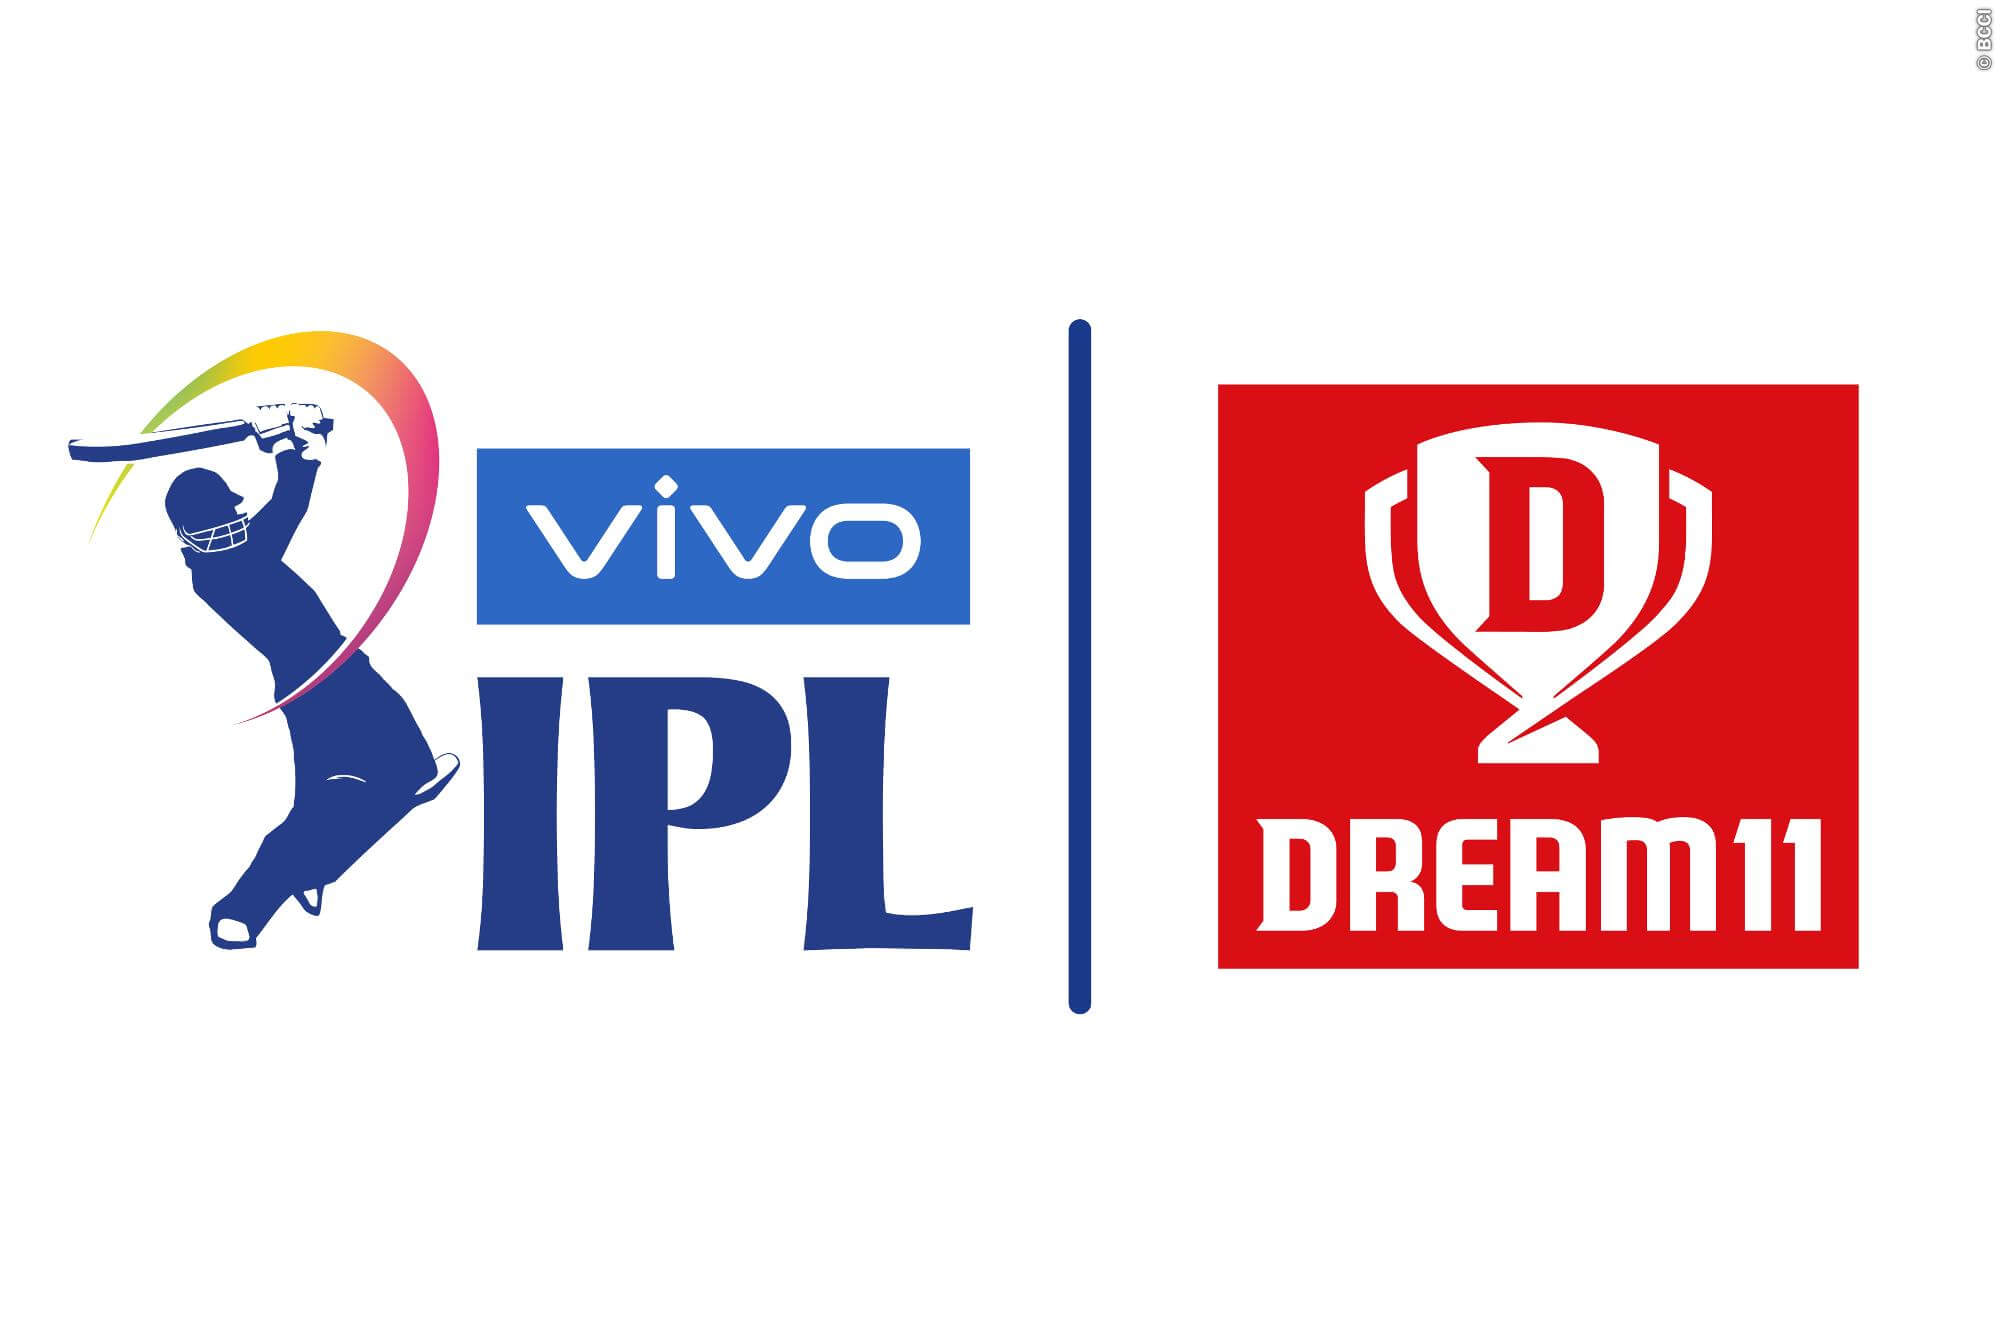 Dream 11 is the new title sponsor of the IPL